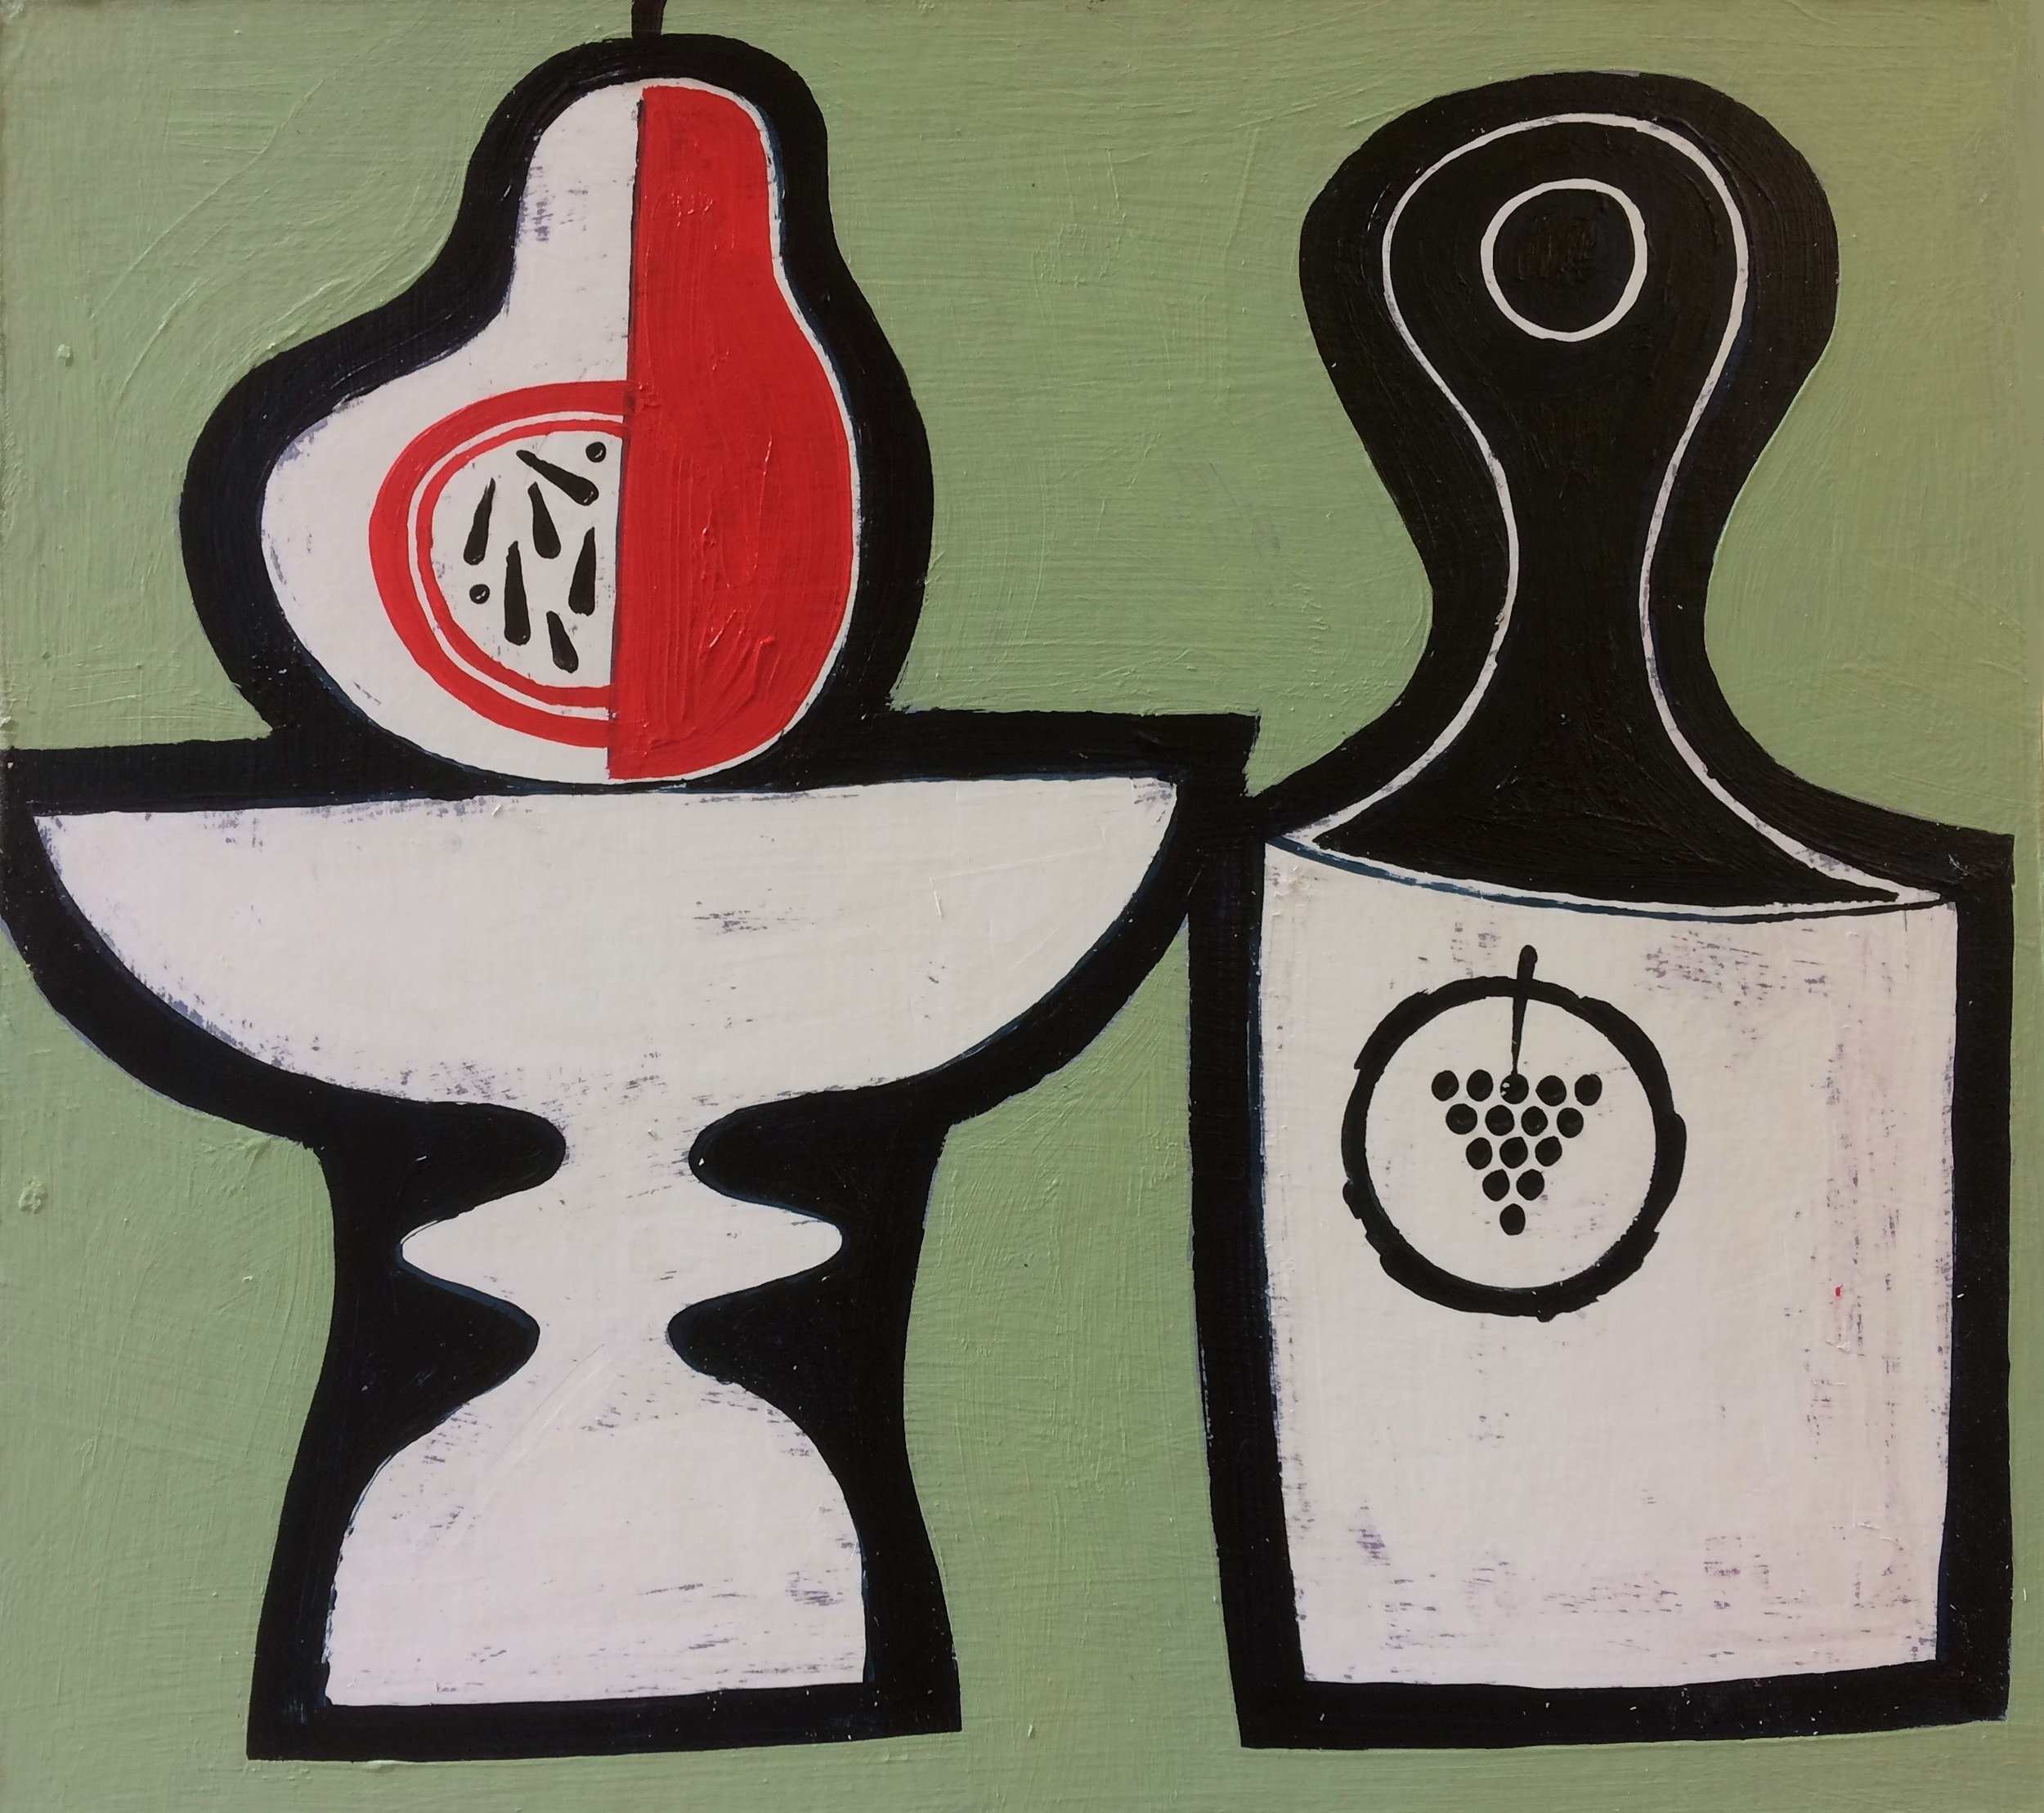 Title: Red Pear and Bottle Size: 23 x 25 cm Medium: Acrylic on board